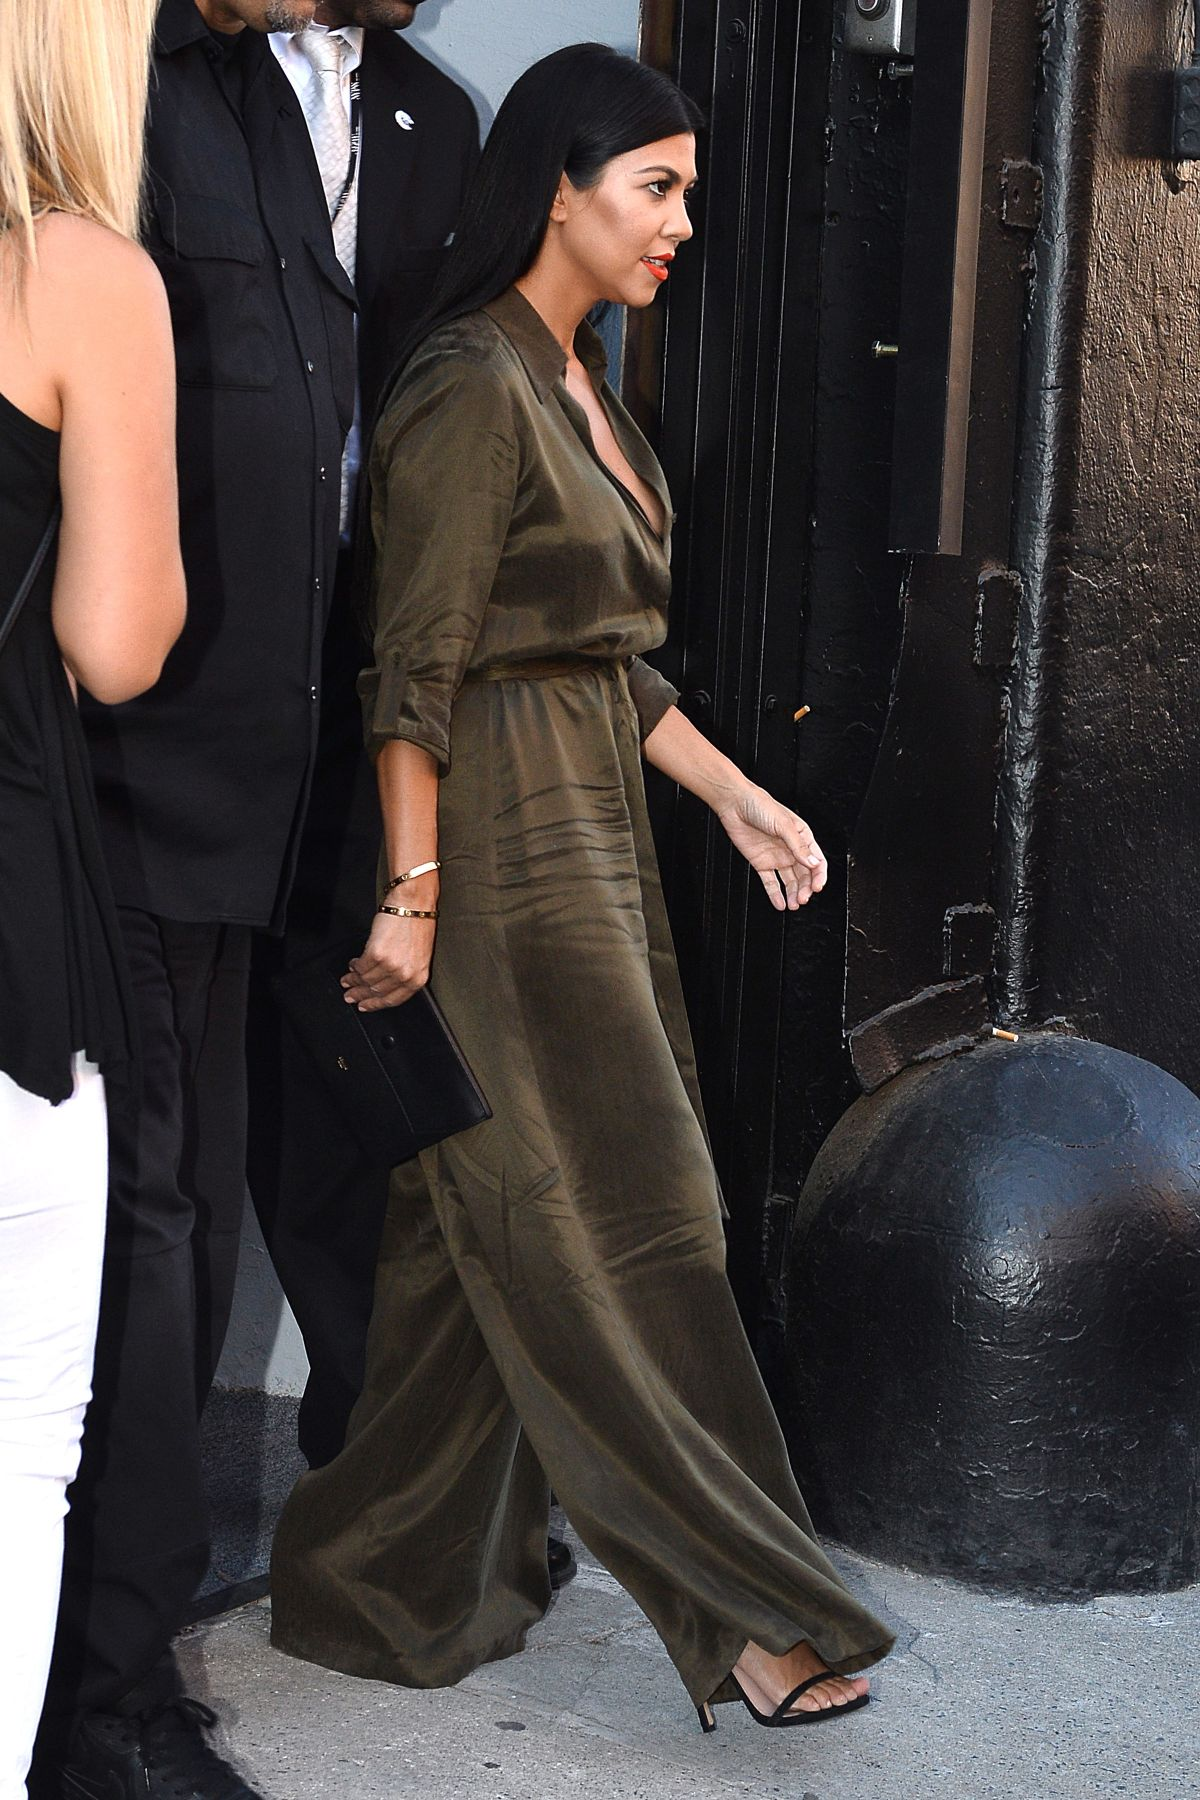 Kourtney Kardashian At Alice Olivia By Stacey Bendet Fashion Show In New York 09 15 2015